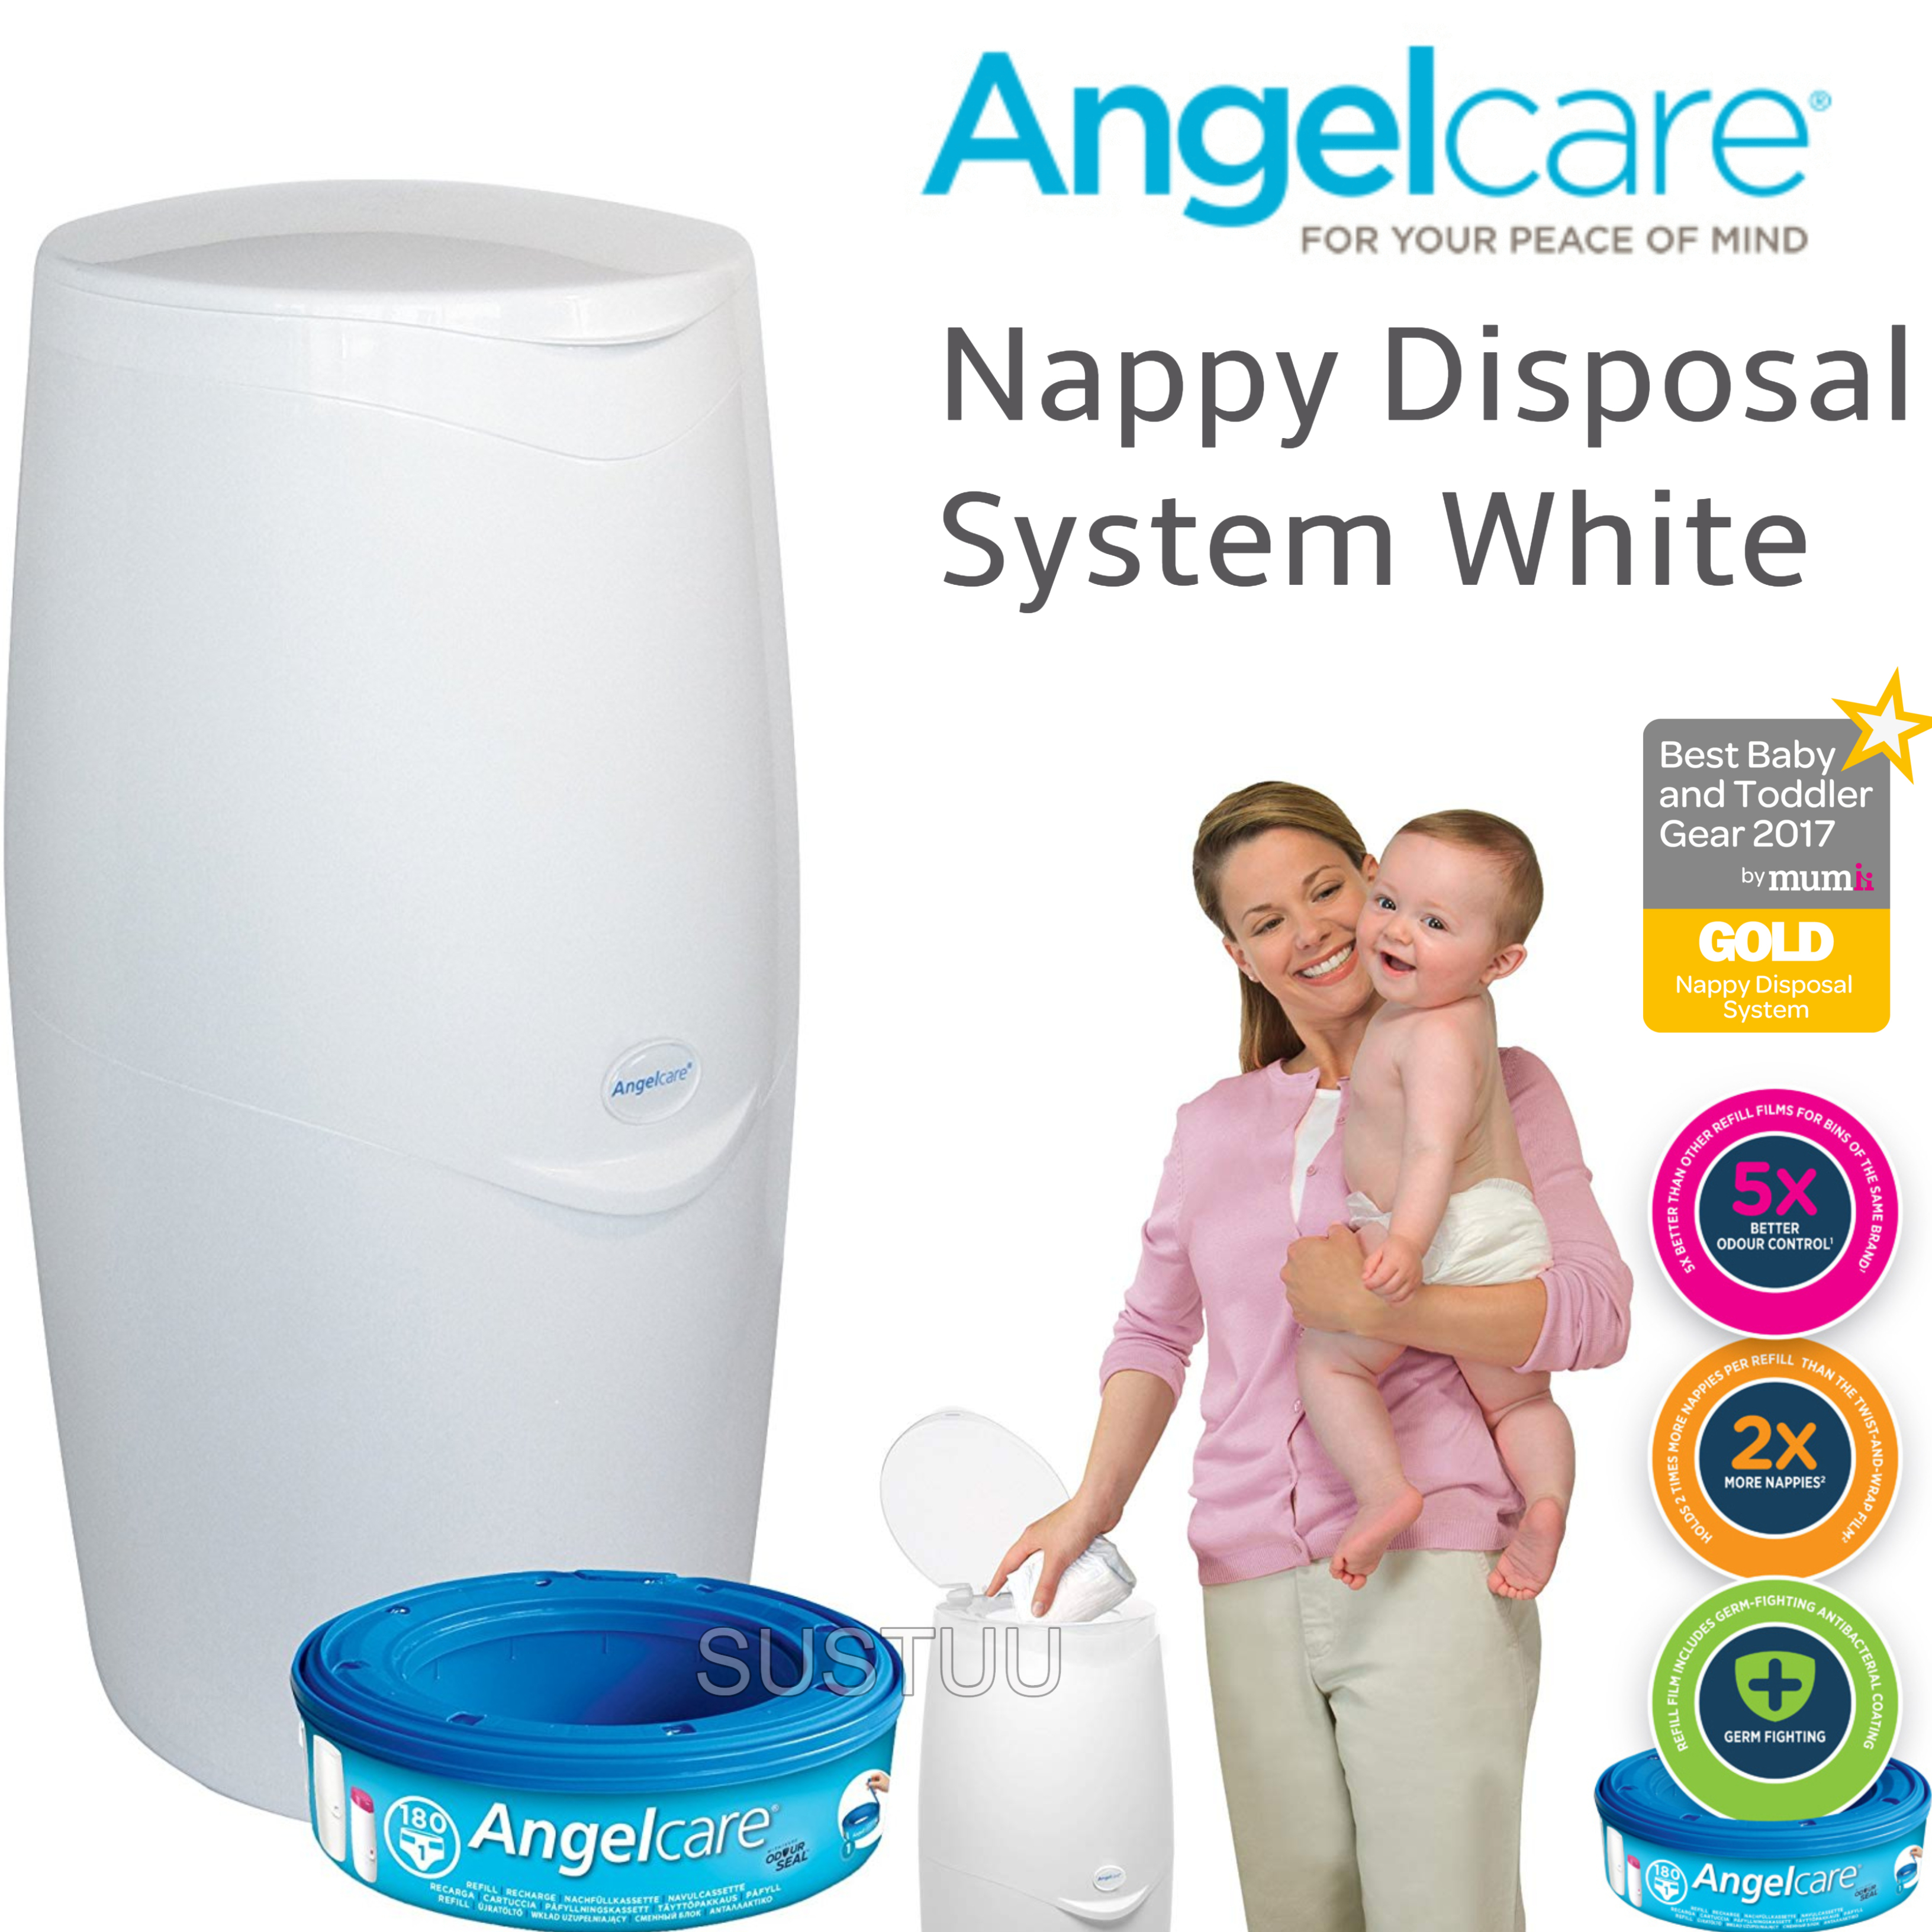 Angelcare Nappy Disposal System|Baby/Kid's Nappies/Diapers Cleaning Bin|White|